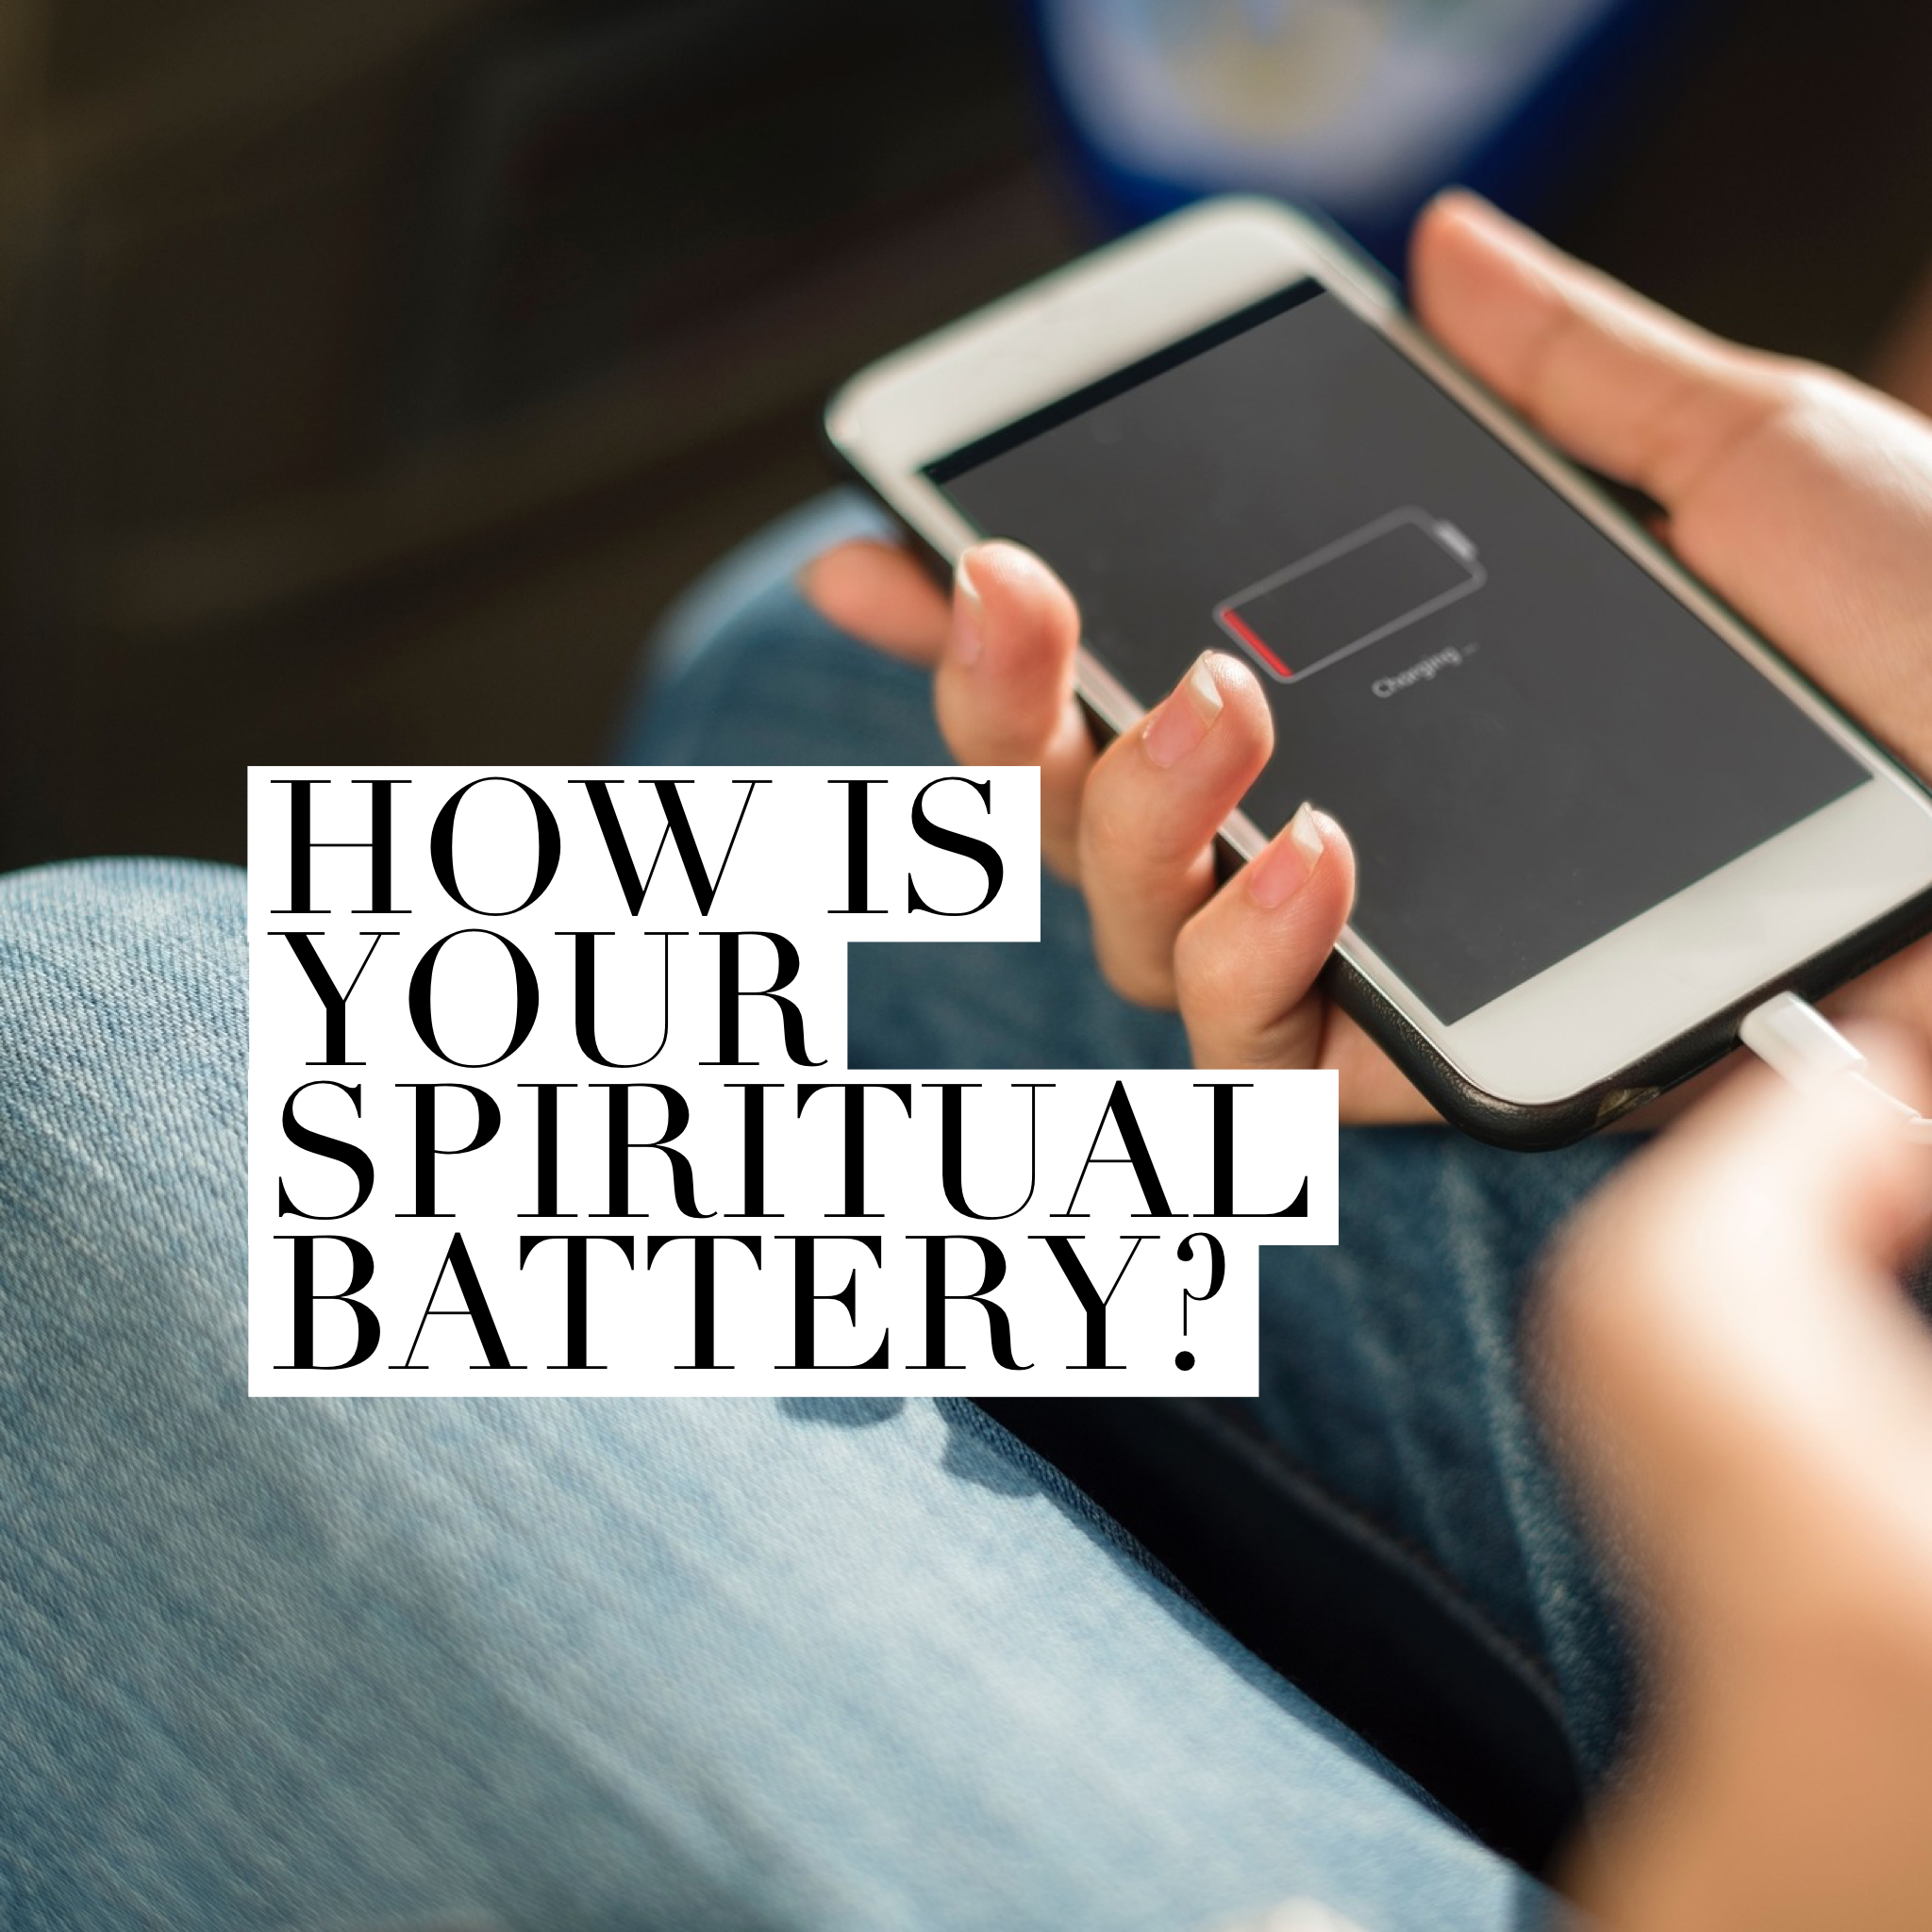 How Is Your Spiritual Battery?